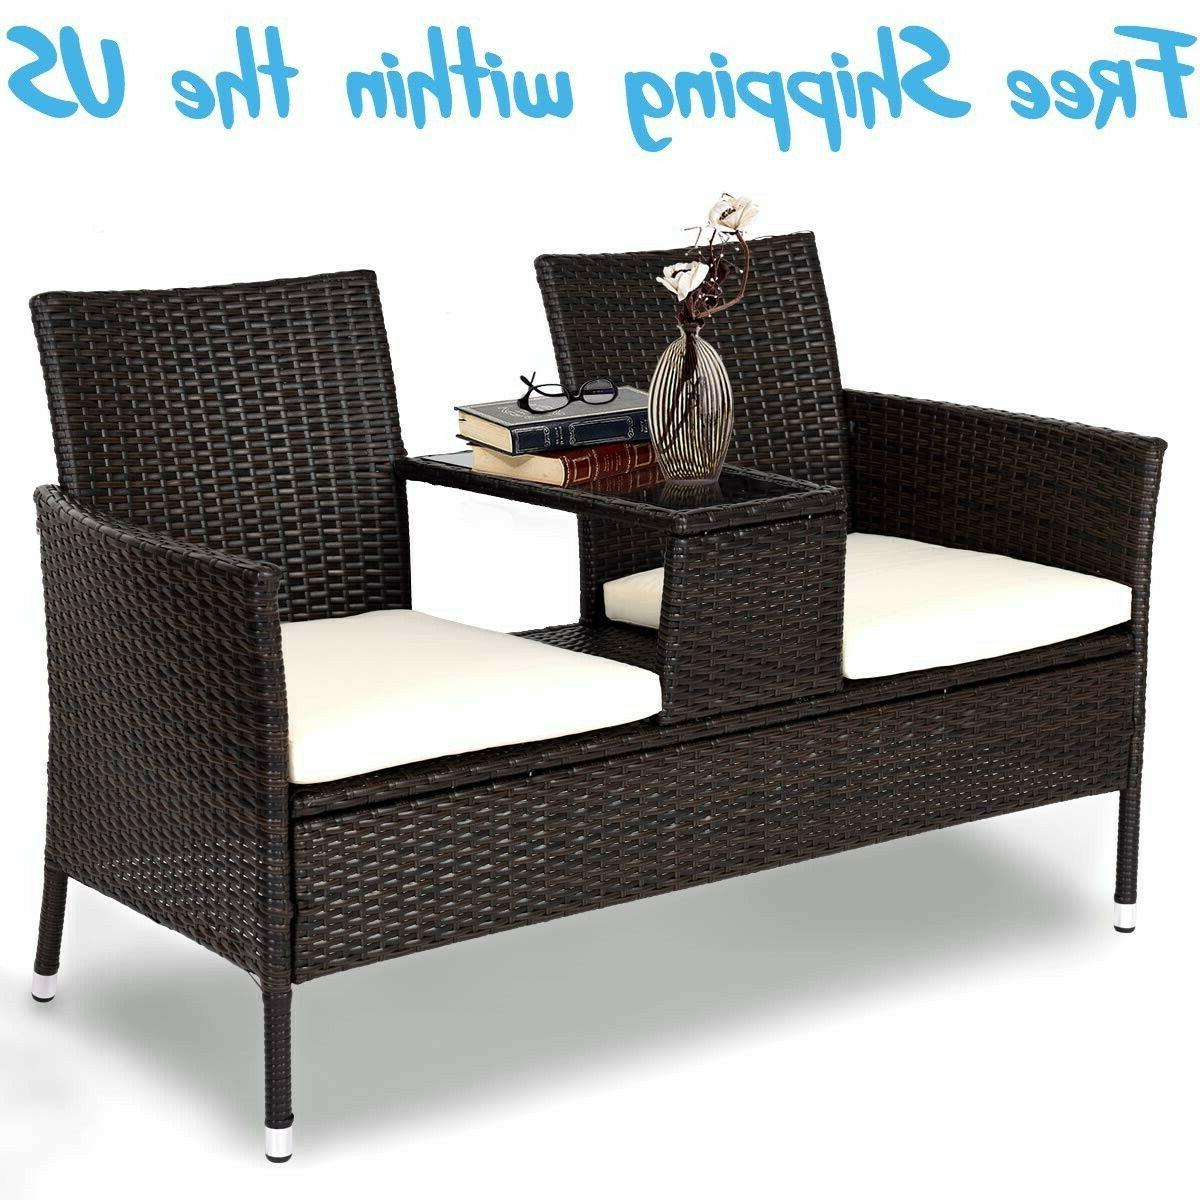 brand new outdoor furniture patio set